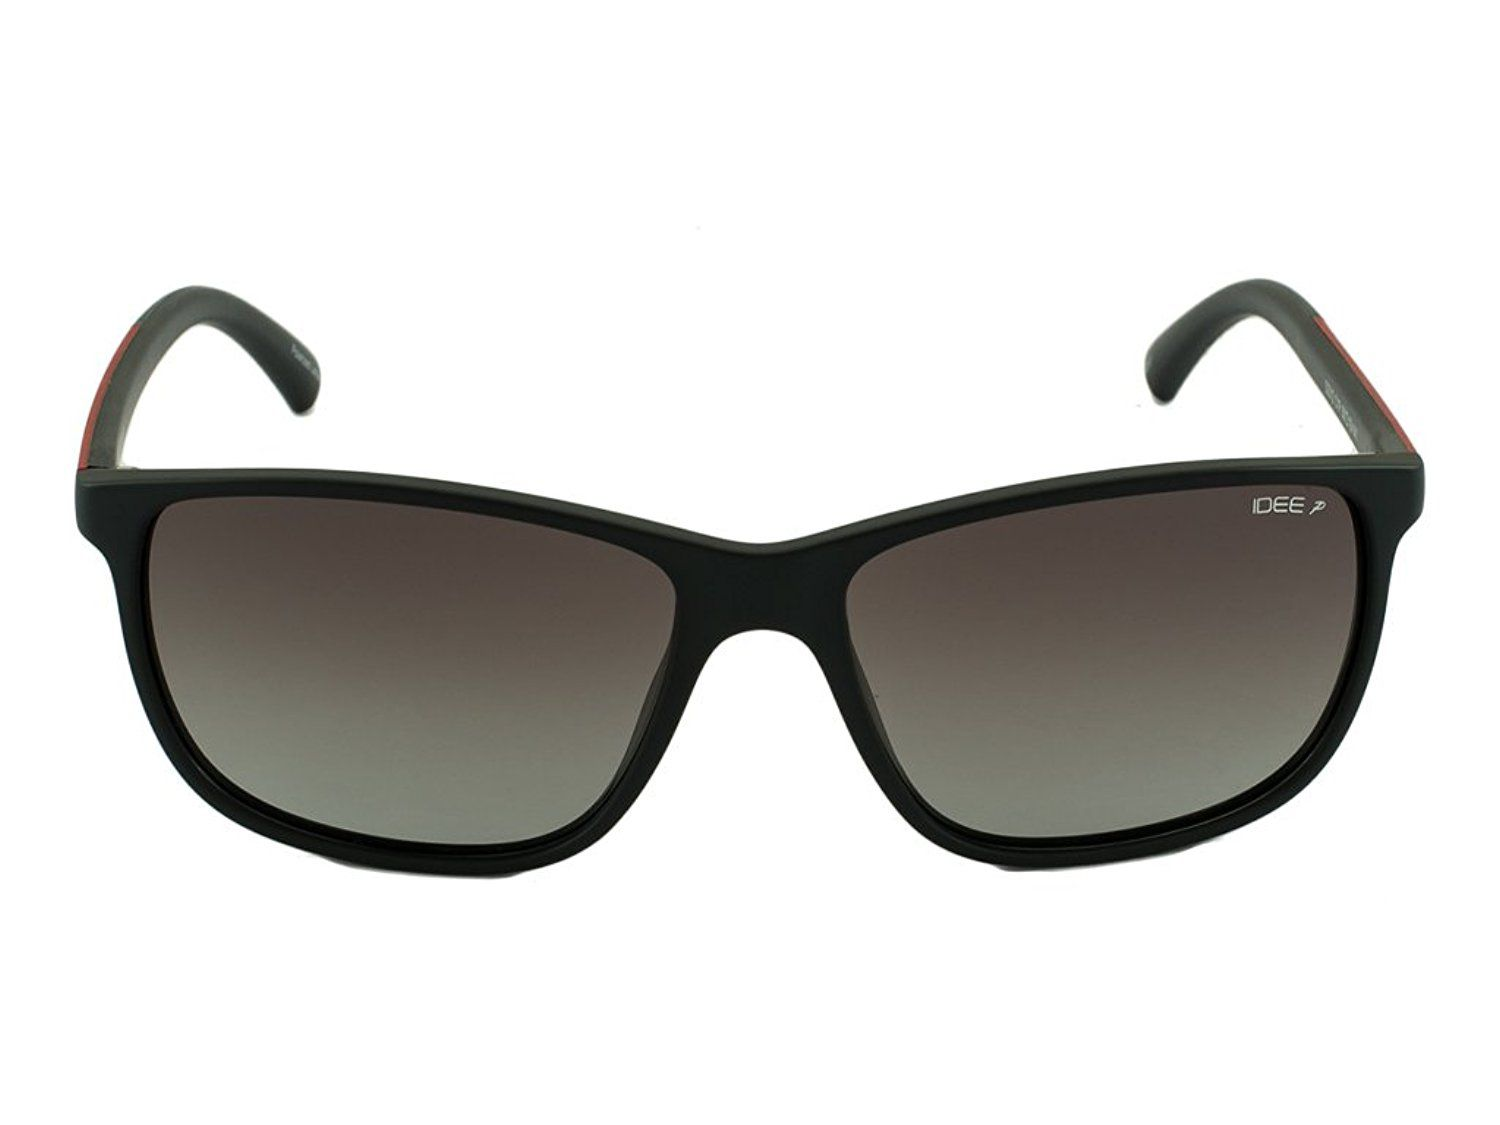 d5ce4586ec Idee Copper Square Sunglasses ( IDS2312C1PSG ) - Buy Idee Copper Square  Sunglasses ( IDS2312C1PSG ) Online at Low Price - Snapdeal